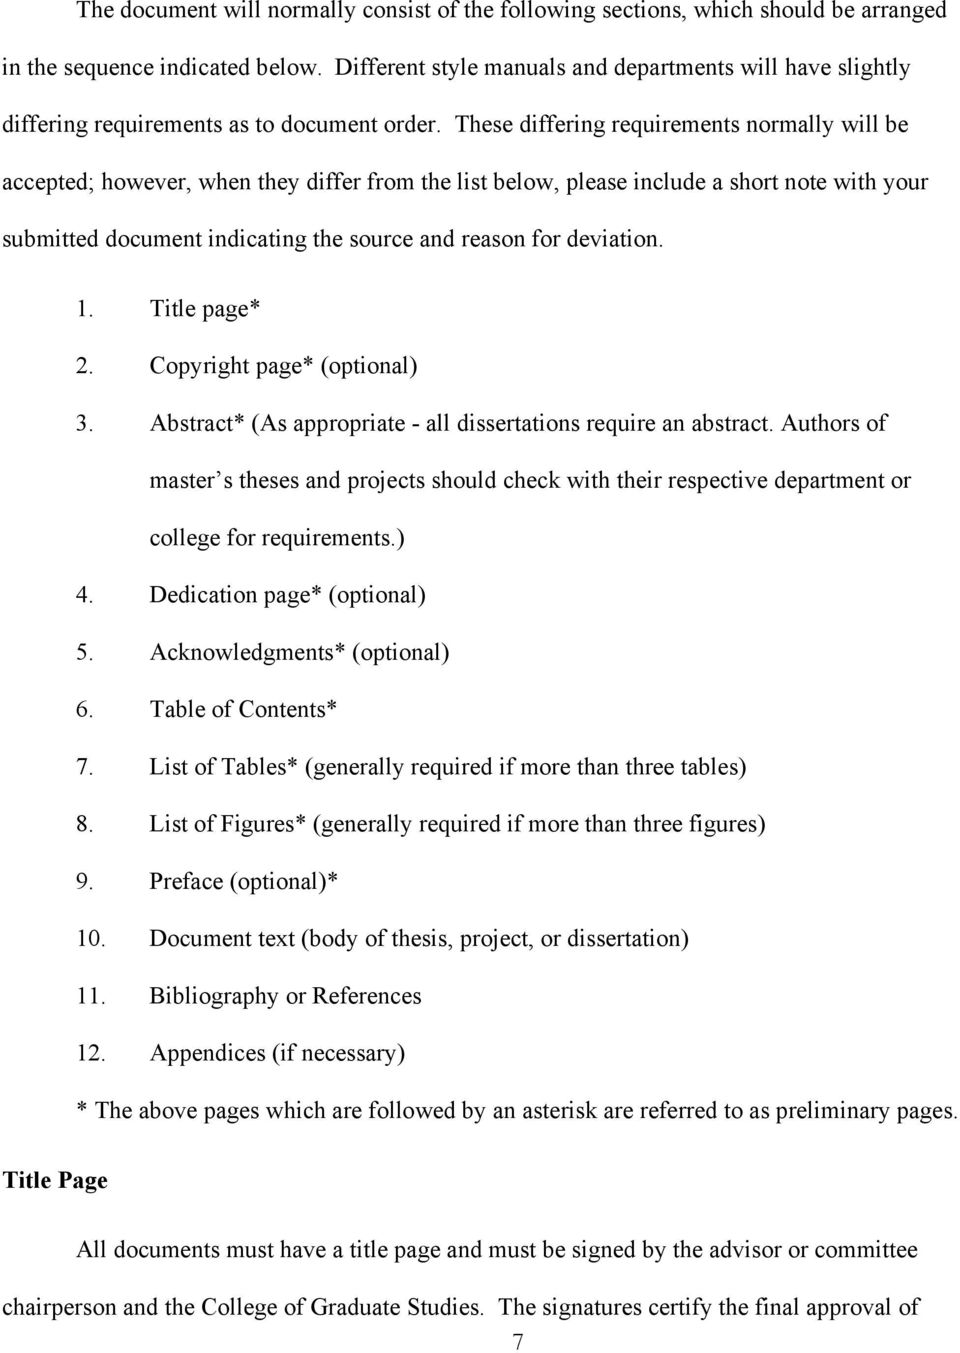 These differing requirements normally will be accepted; however, when they differ from the list below, please include a short note with your submitted document indicating the source and reason for